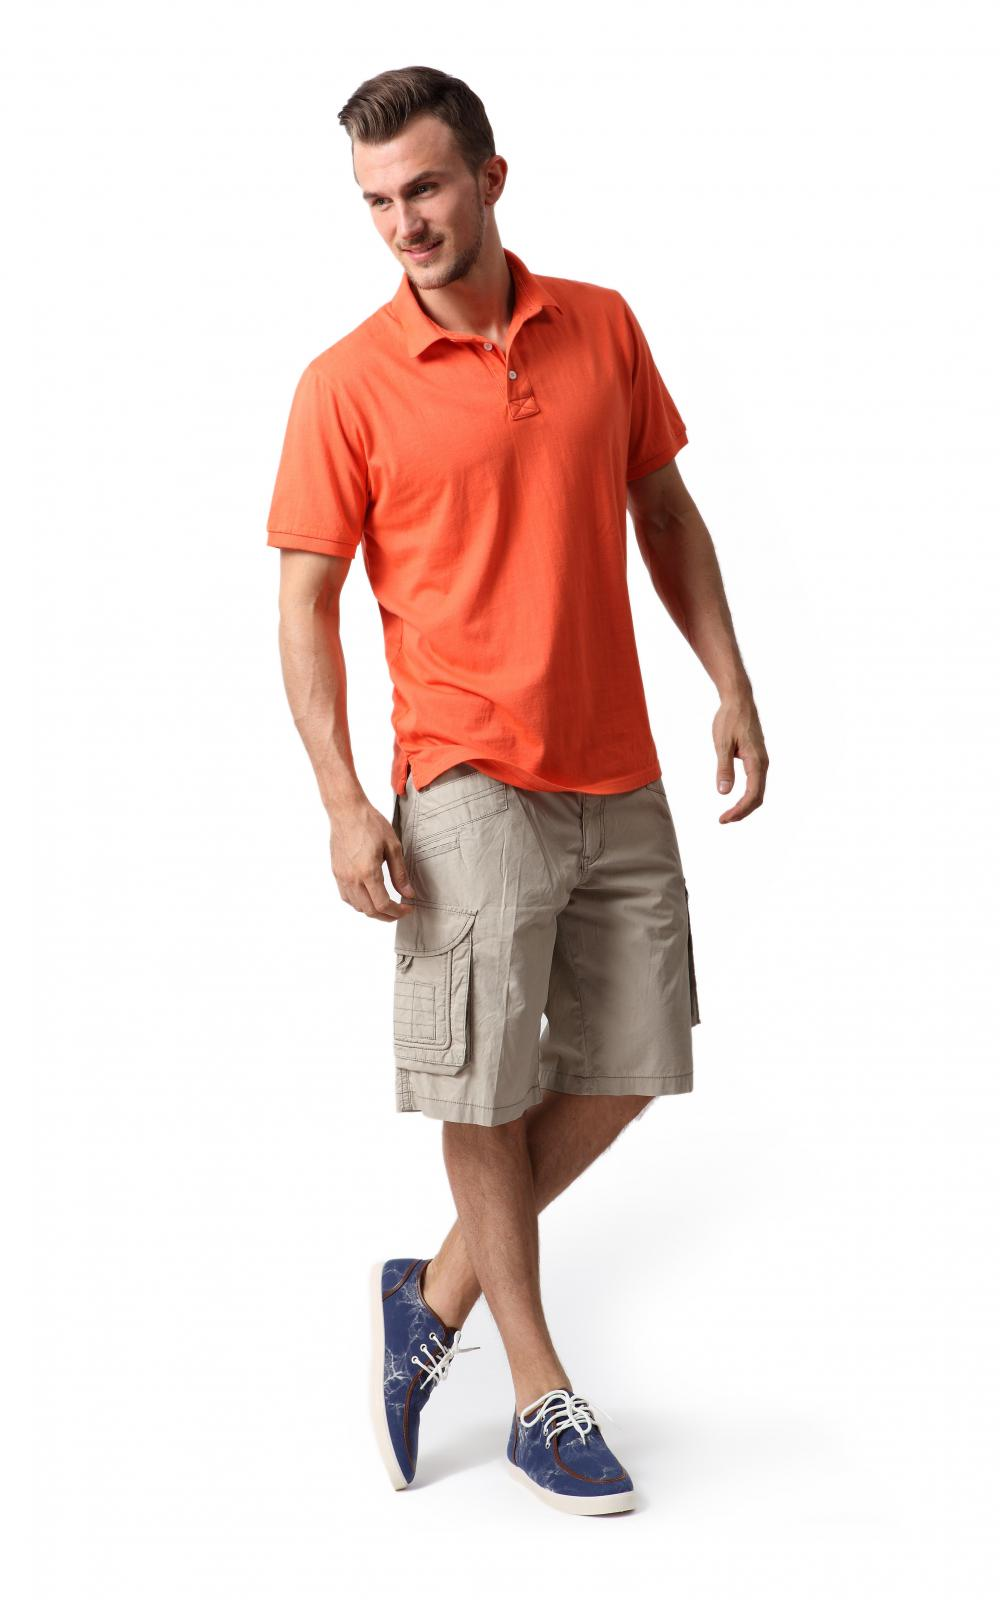 Men's patch pocket shorts